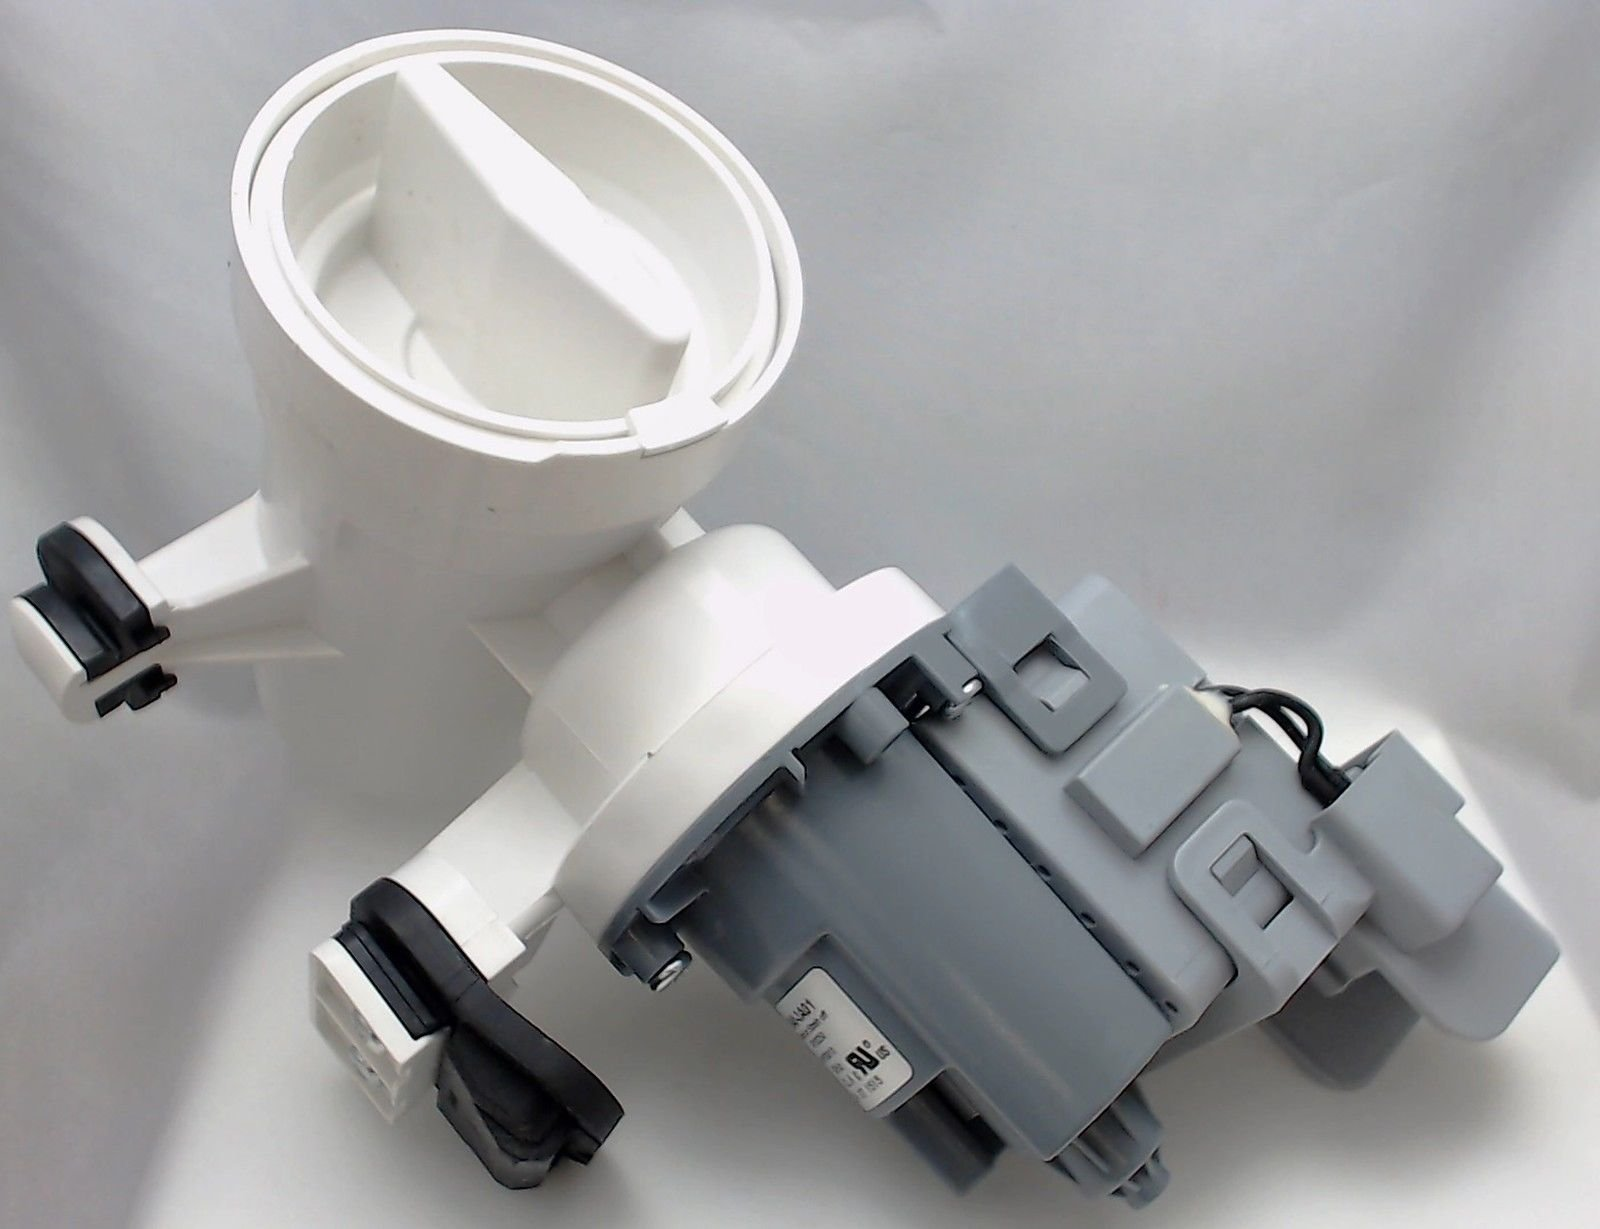 Non OEM Drain Motor Pump Assembly for Whirlpool, Sears Washer Replaces AP6023956, PS1960402, WPW10730972